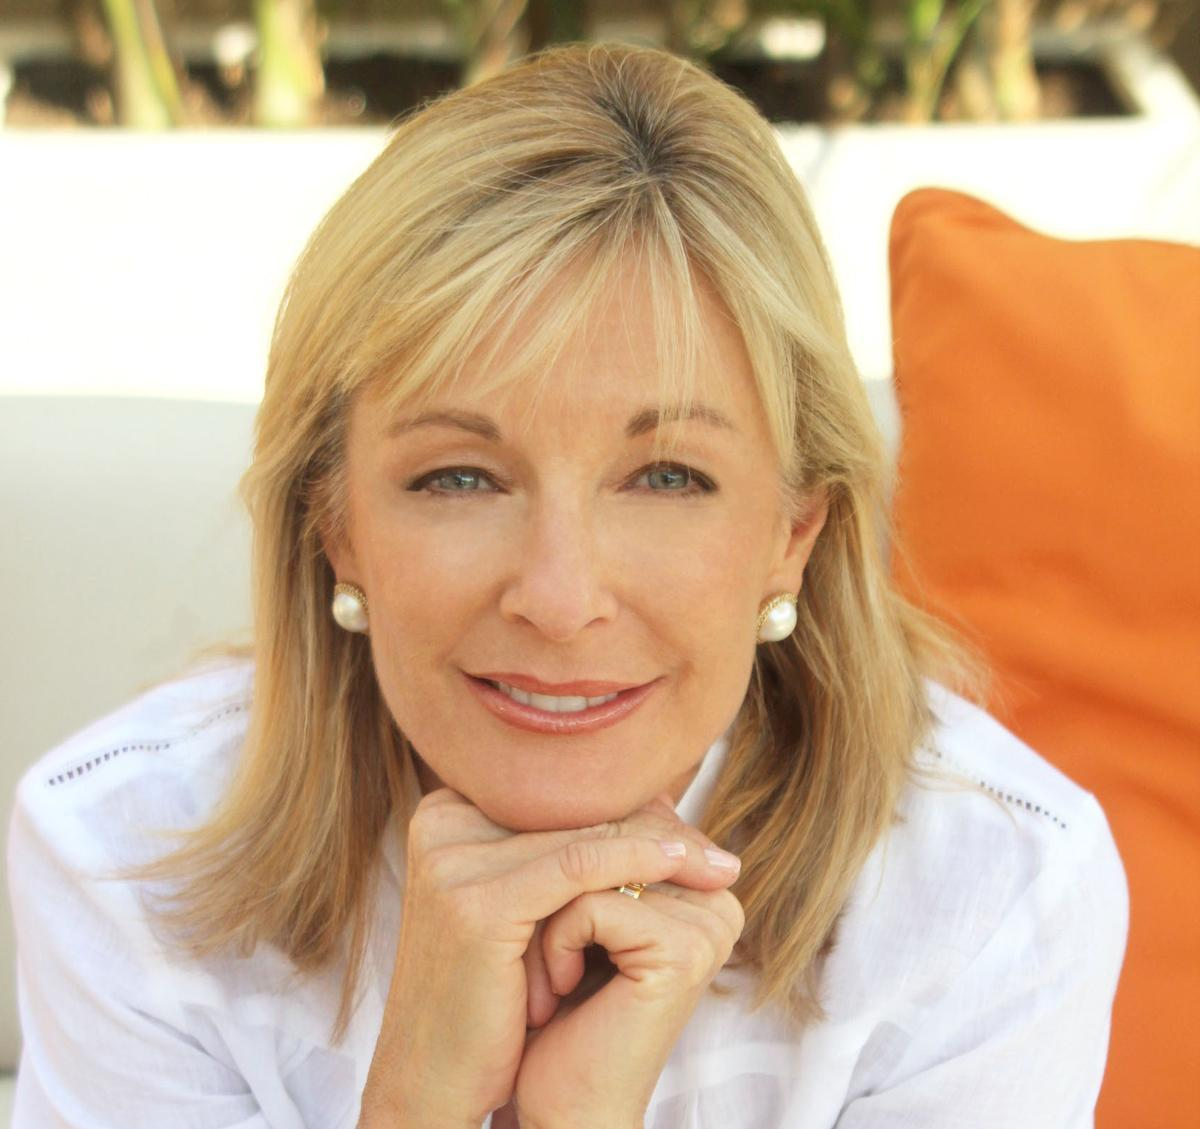 Susie Ellis, GWI chair and CEO, said the event will 'share the most important wellness travel trends, and give the travel industry some bankable predictions for the future'